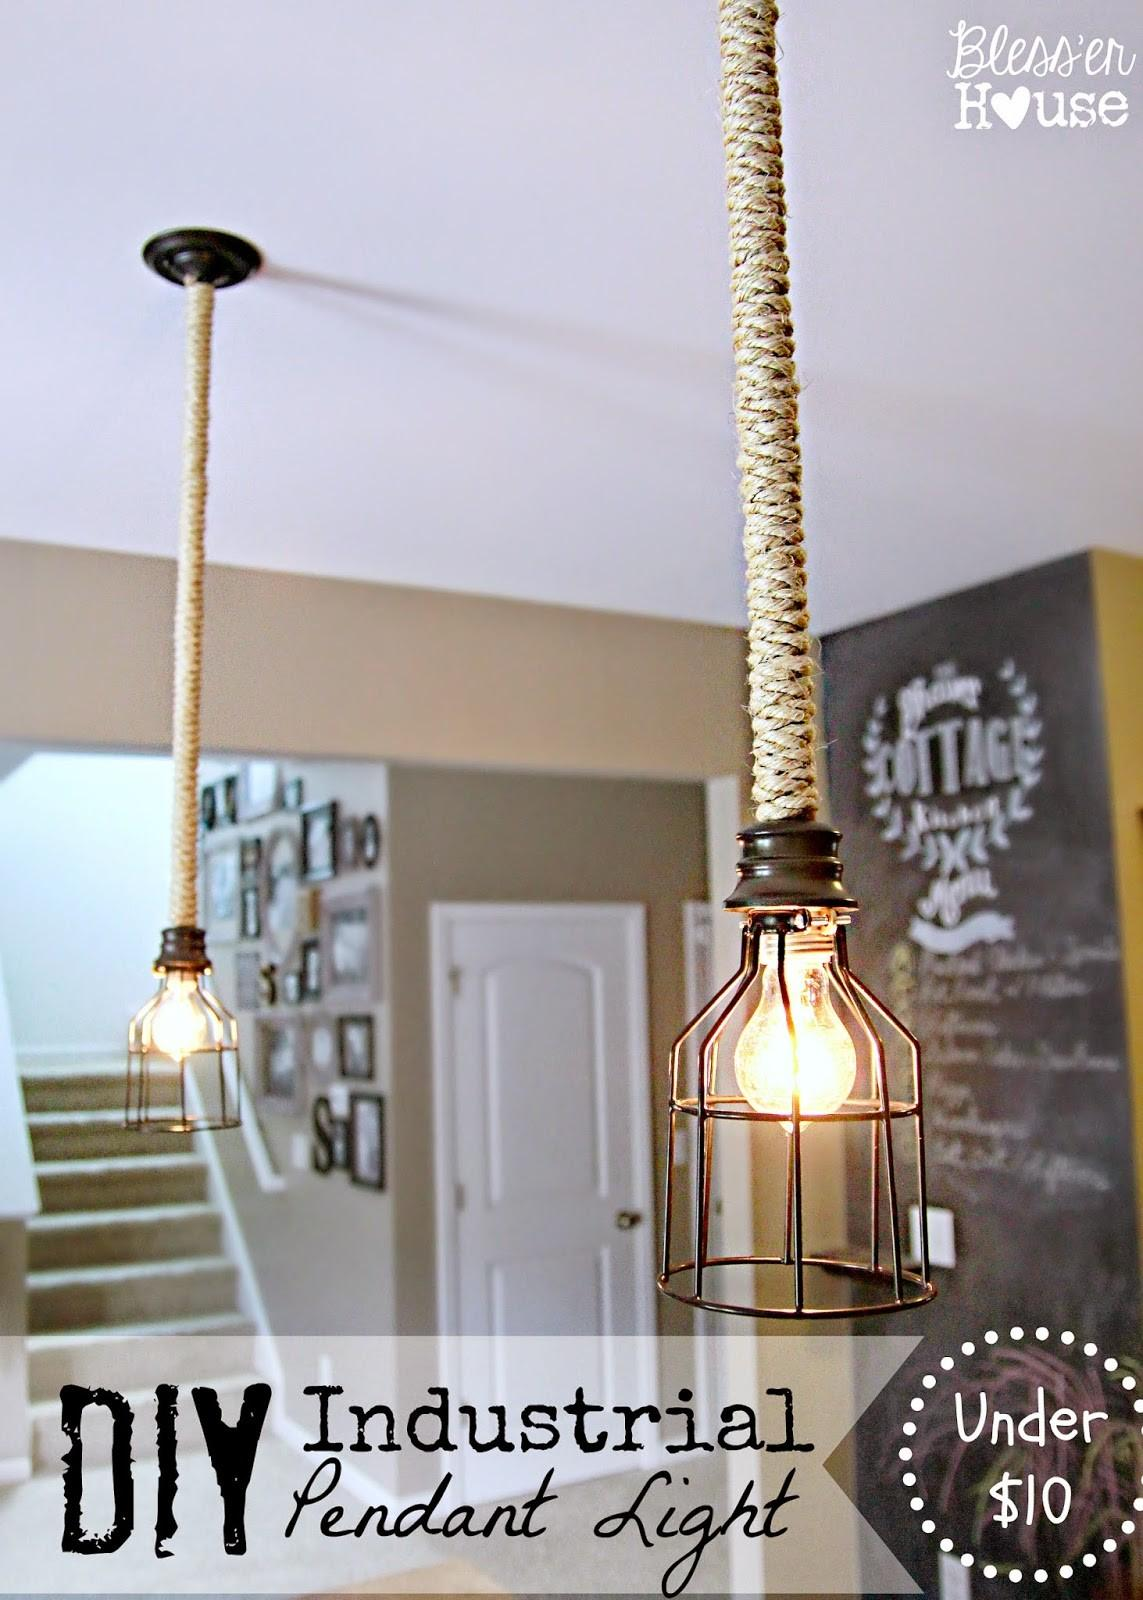 Diy Industrial Pendant Light Under Bless House